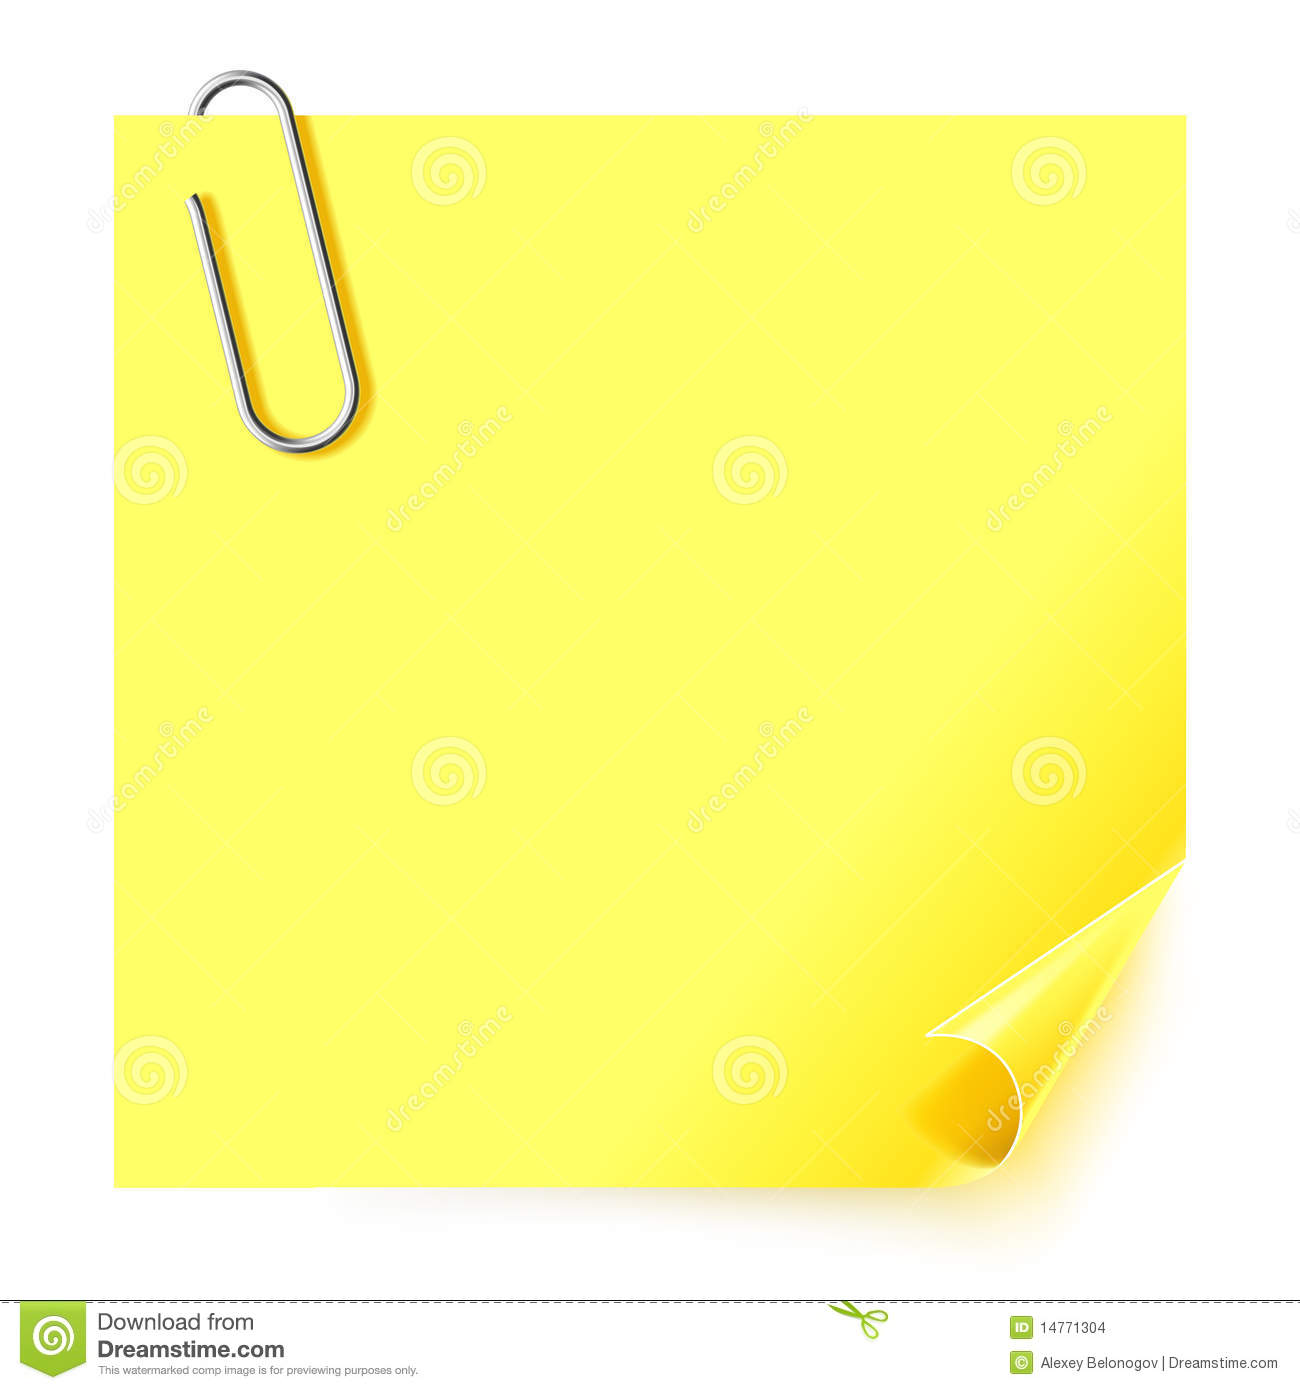 yellow pin clipart - photo #49